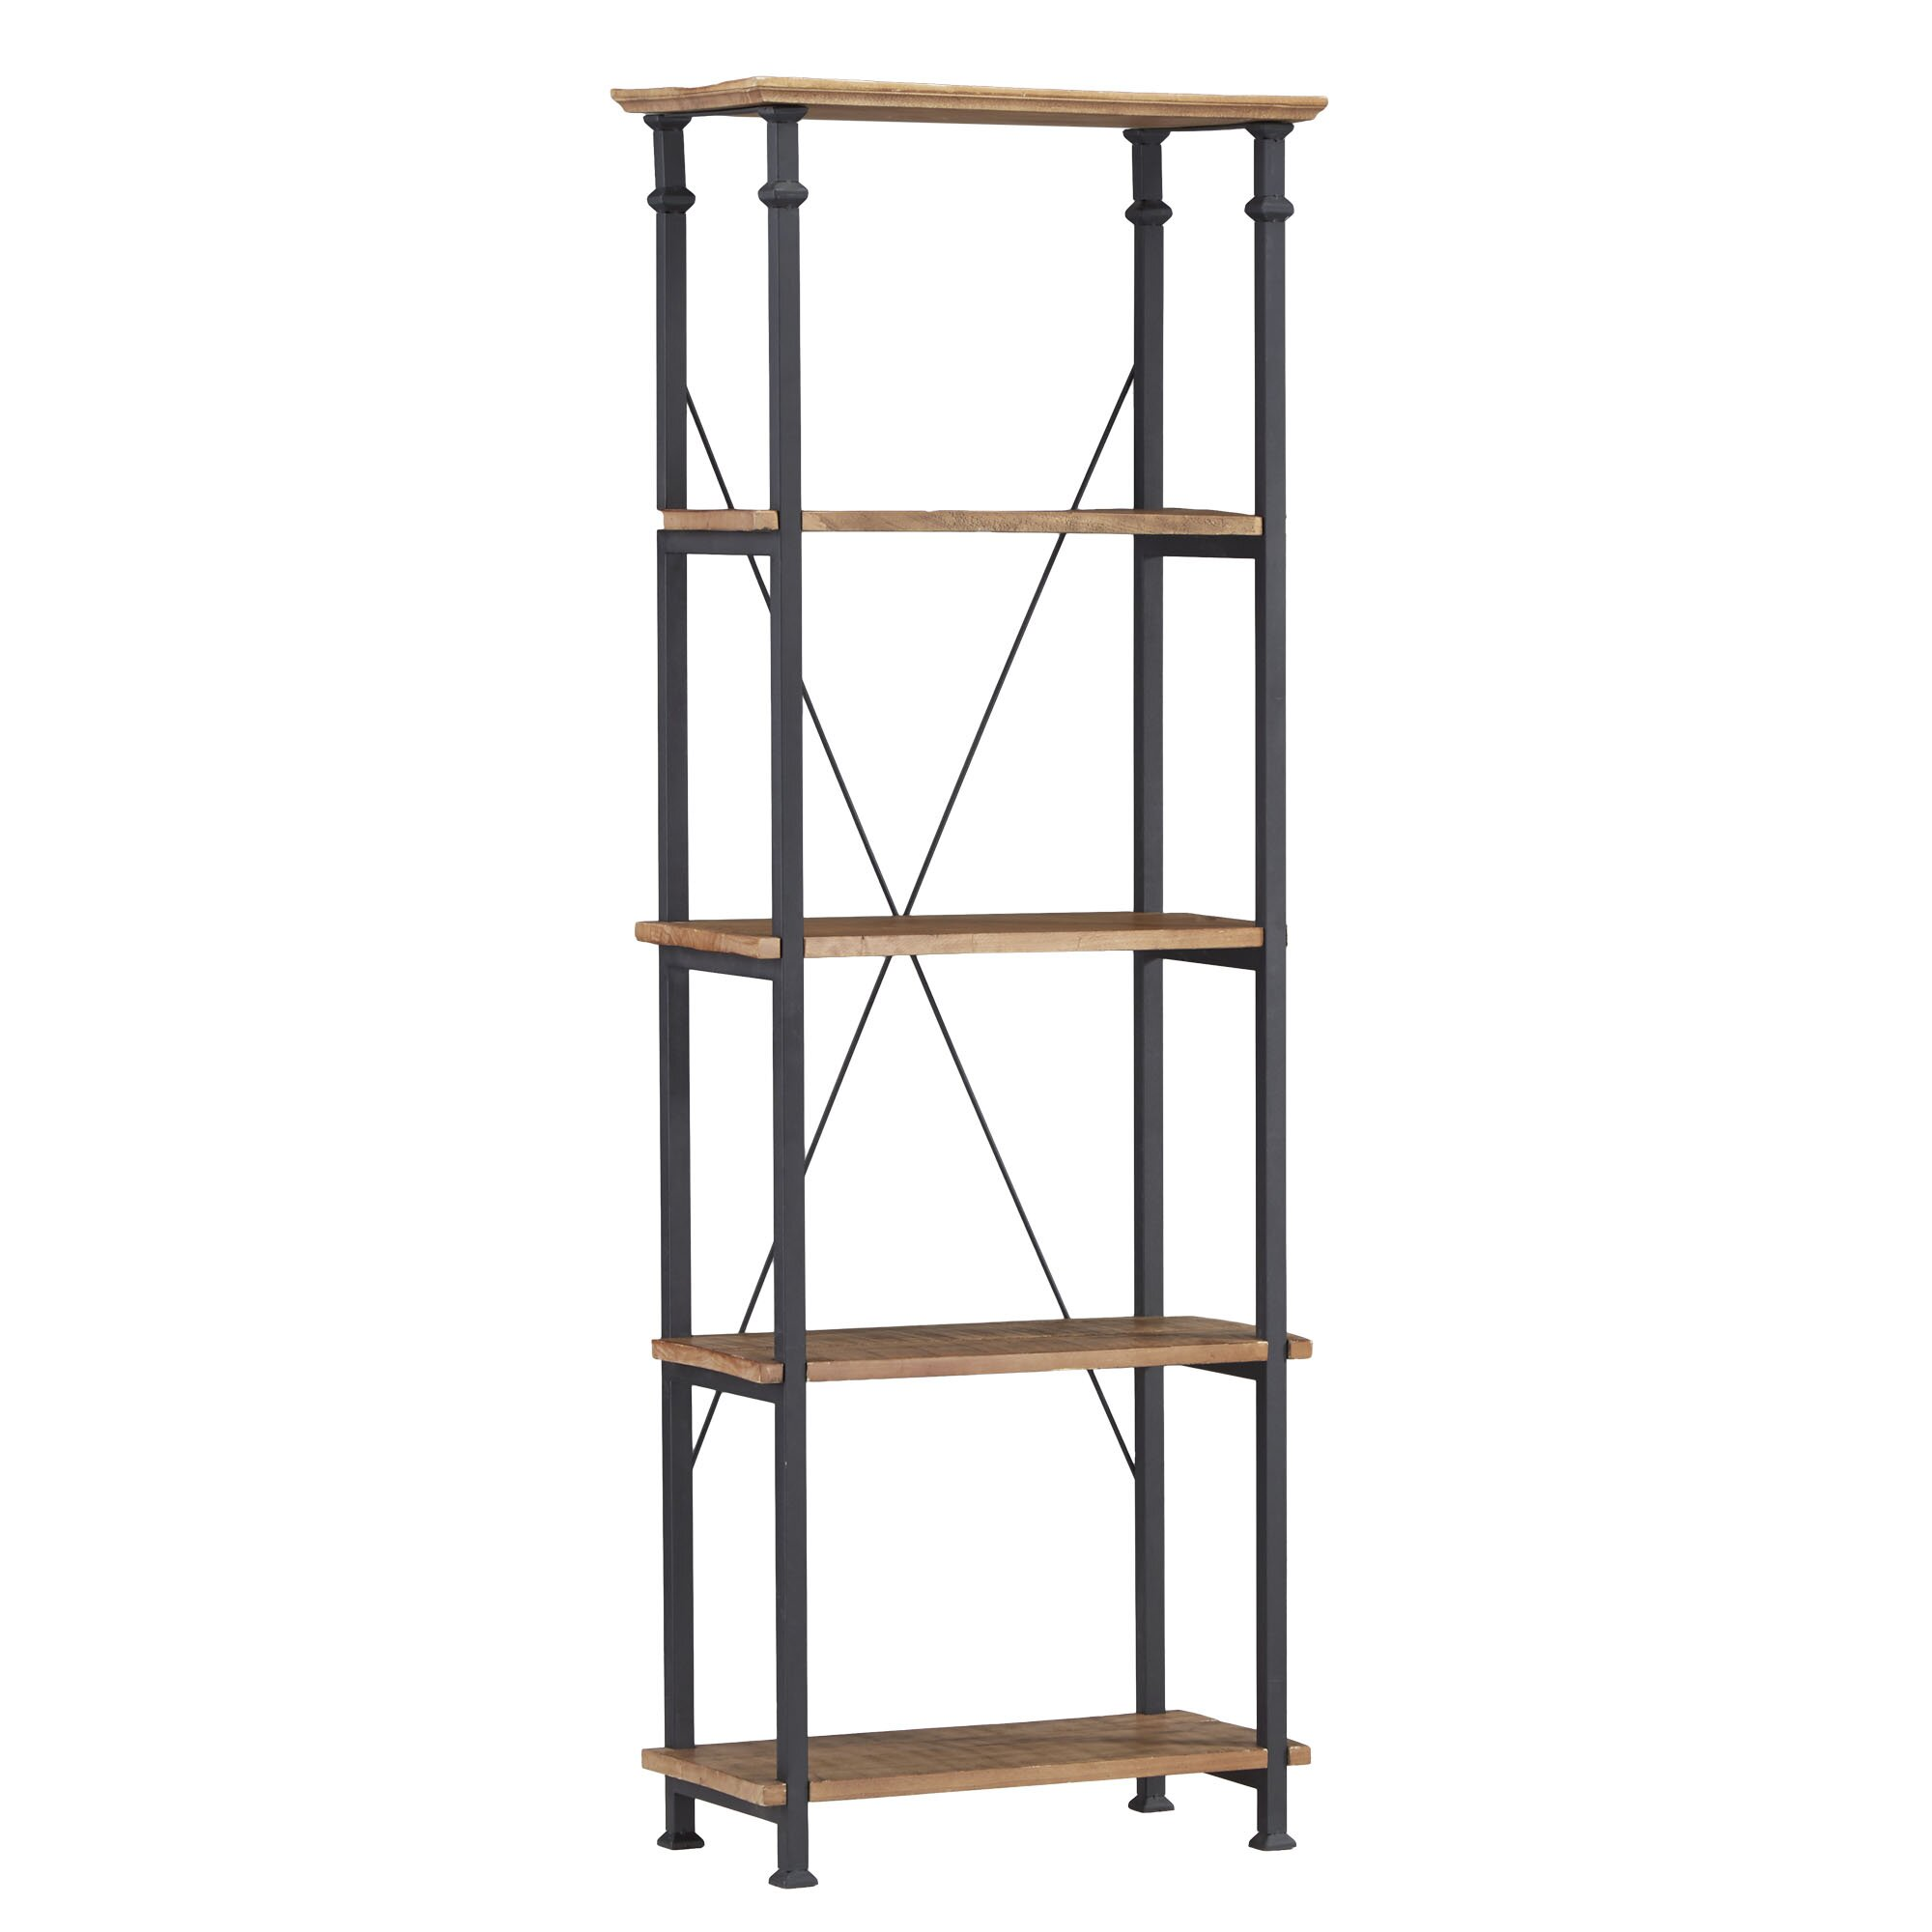 kingstown home eastfield 75 etagere bookcase reviews. Black Bedroom Furniture Sets. Home Design Ideas